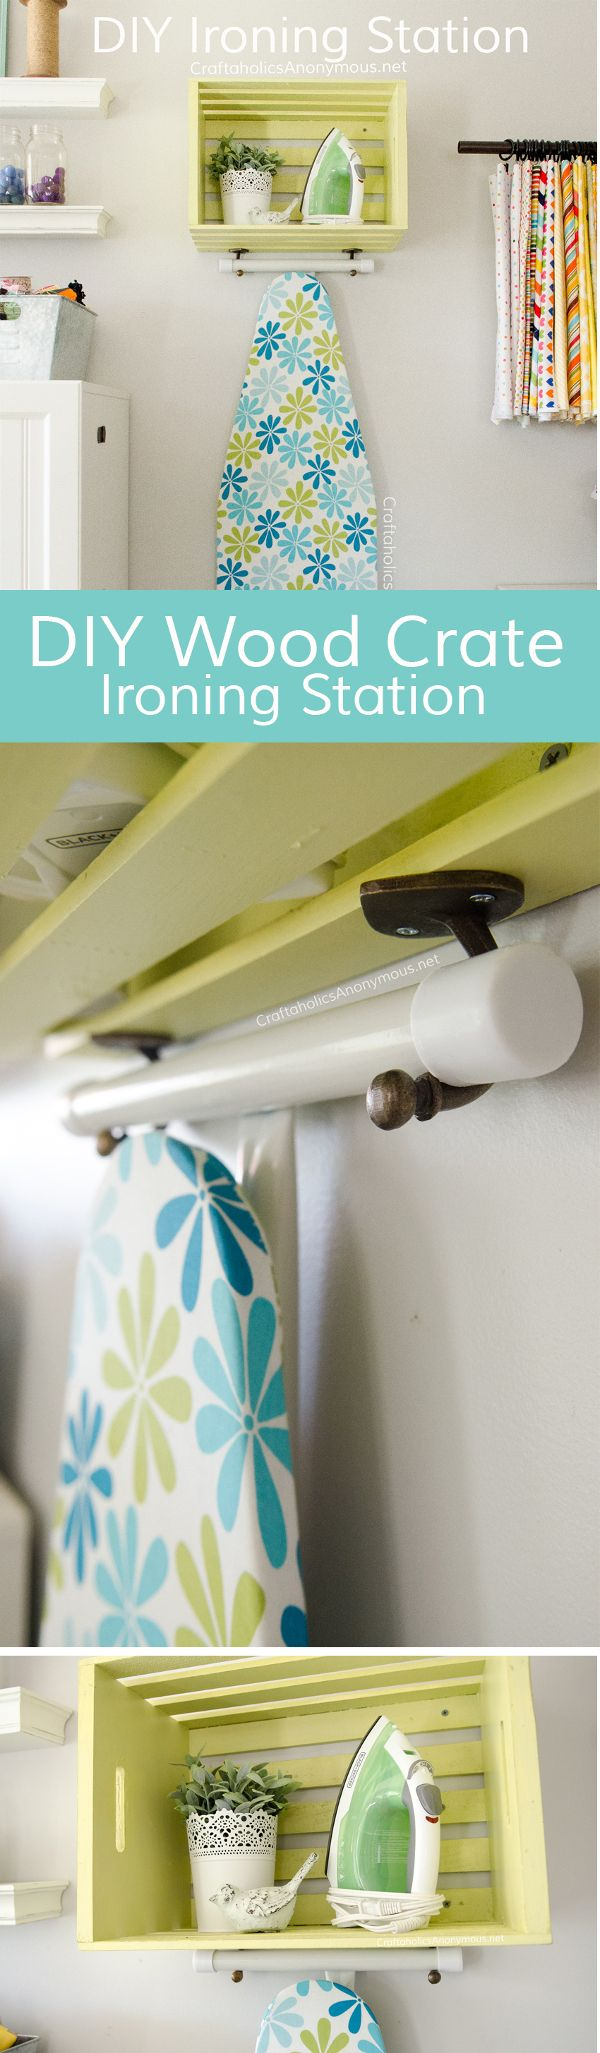 Check out how to build an easy DIY ironing station from wood crates @istandarddesign